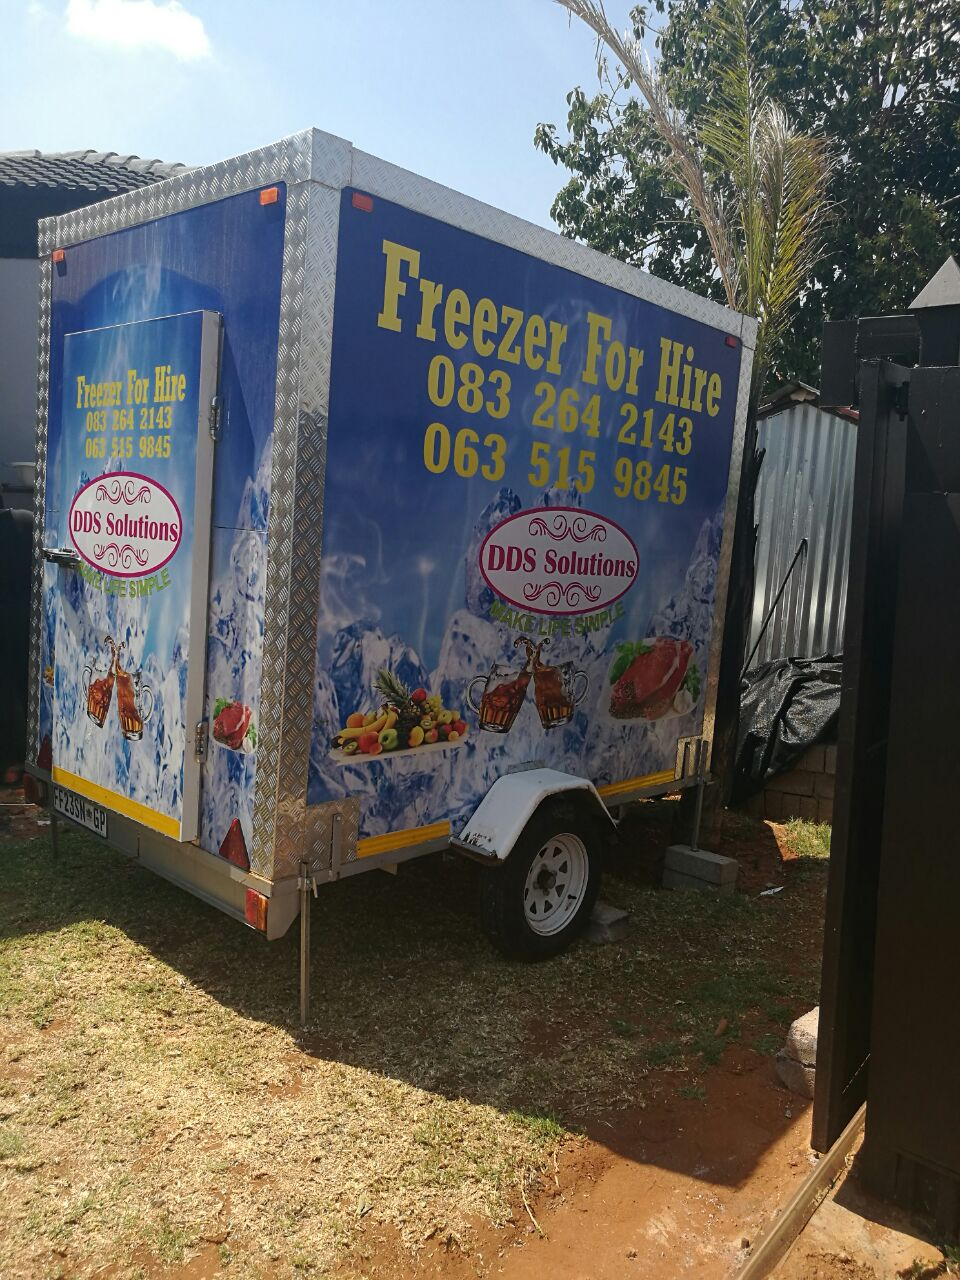 Mobile fridges/freezer for hire